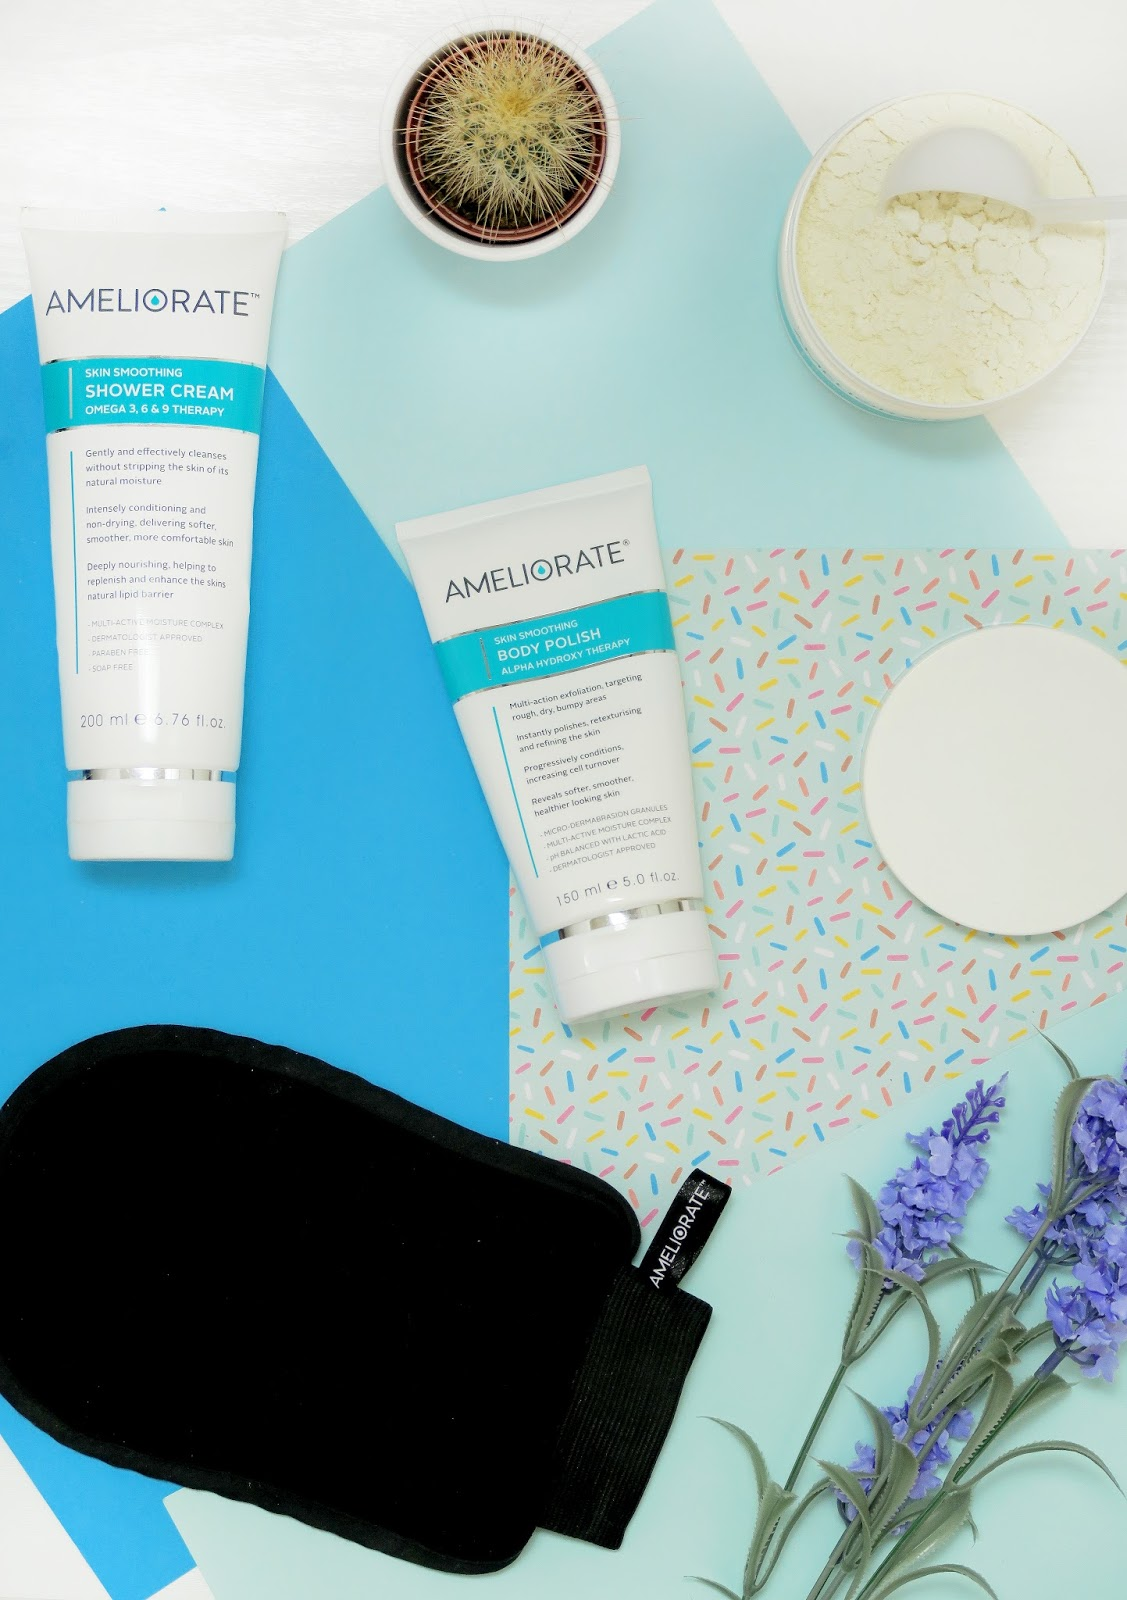 an image of Ameliorate Skin Smoothing range